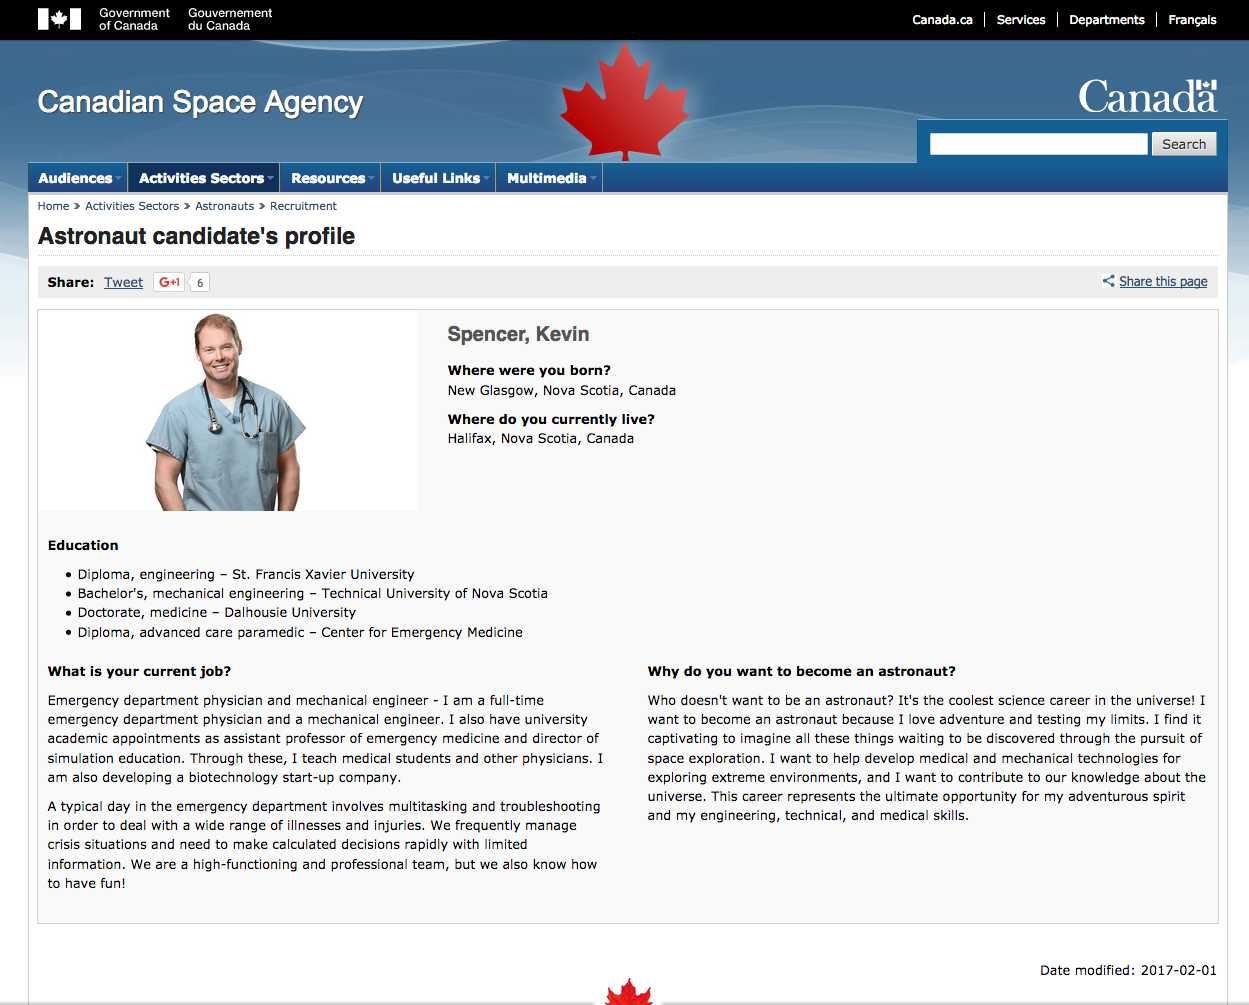 canadian space agency website profile: one of the top 72 finalists from an initial pool of 3772 applicants, during the 2016/2017 astronaut recruitment campaign